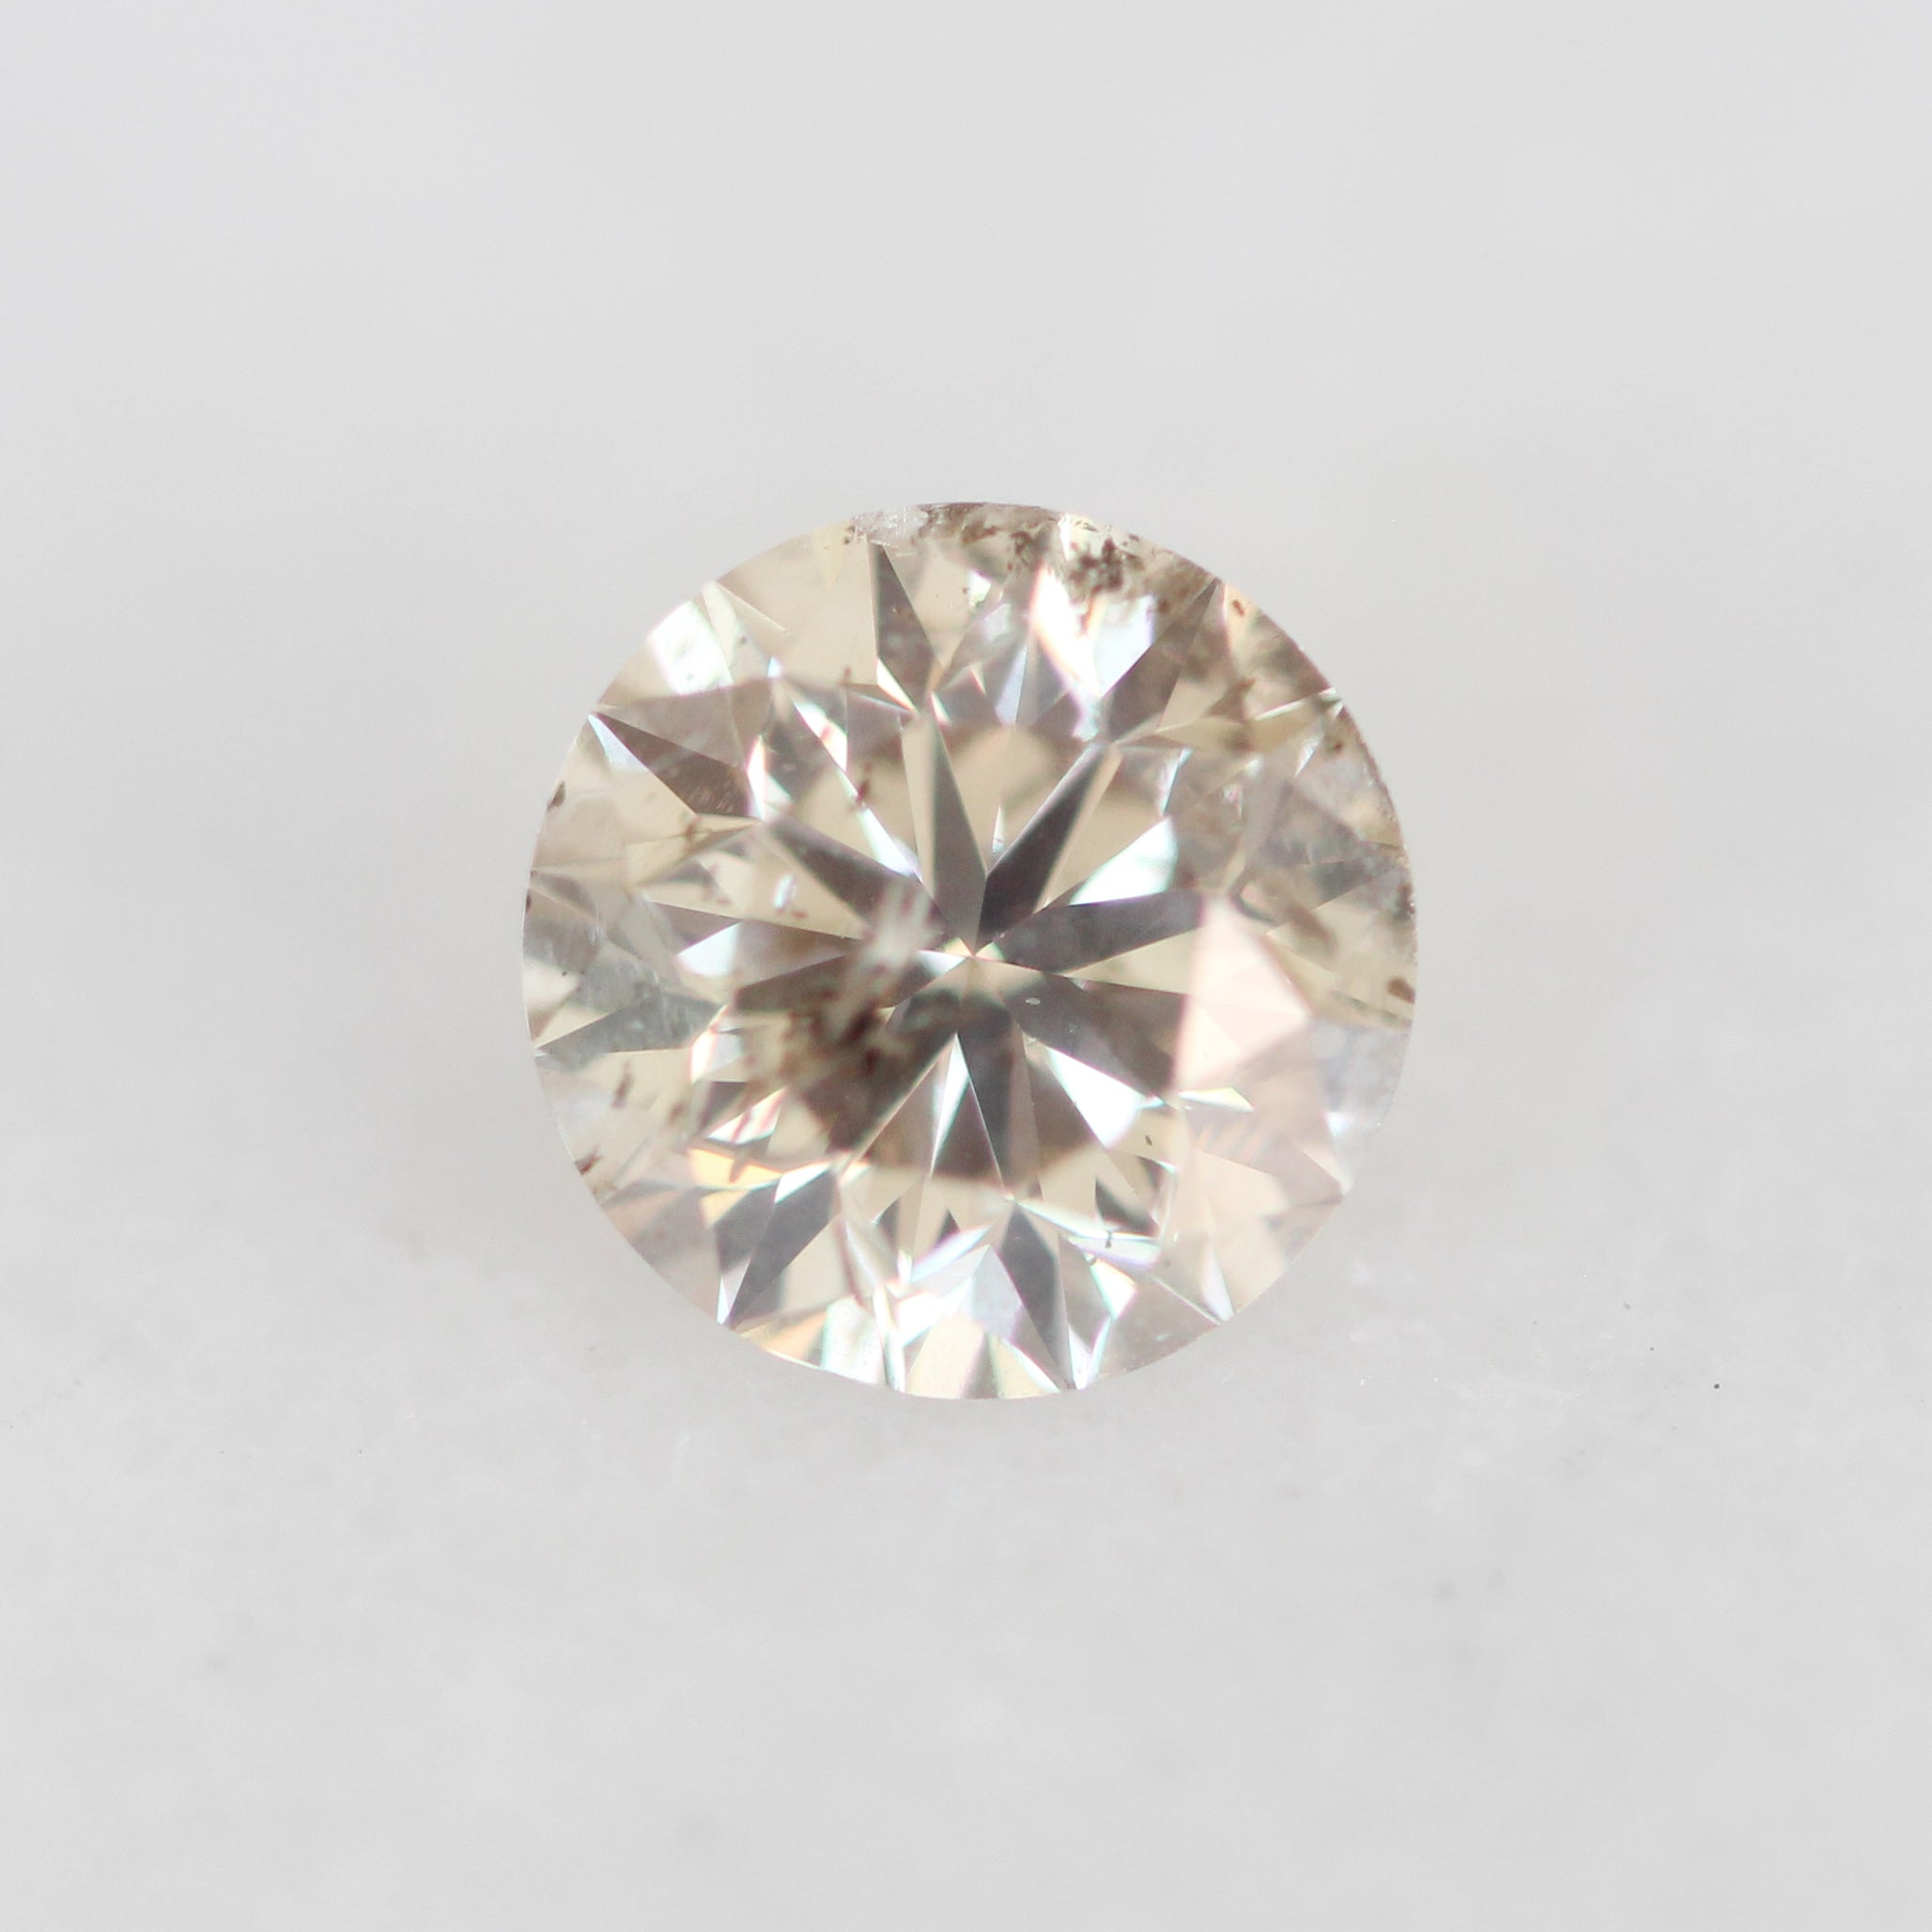 1.55 Carat Round Celestial Diamond for Custom Work - Inventory Code RBRC155 - Celestial Diamonds ® by Midwinter Co.